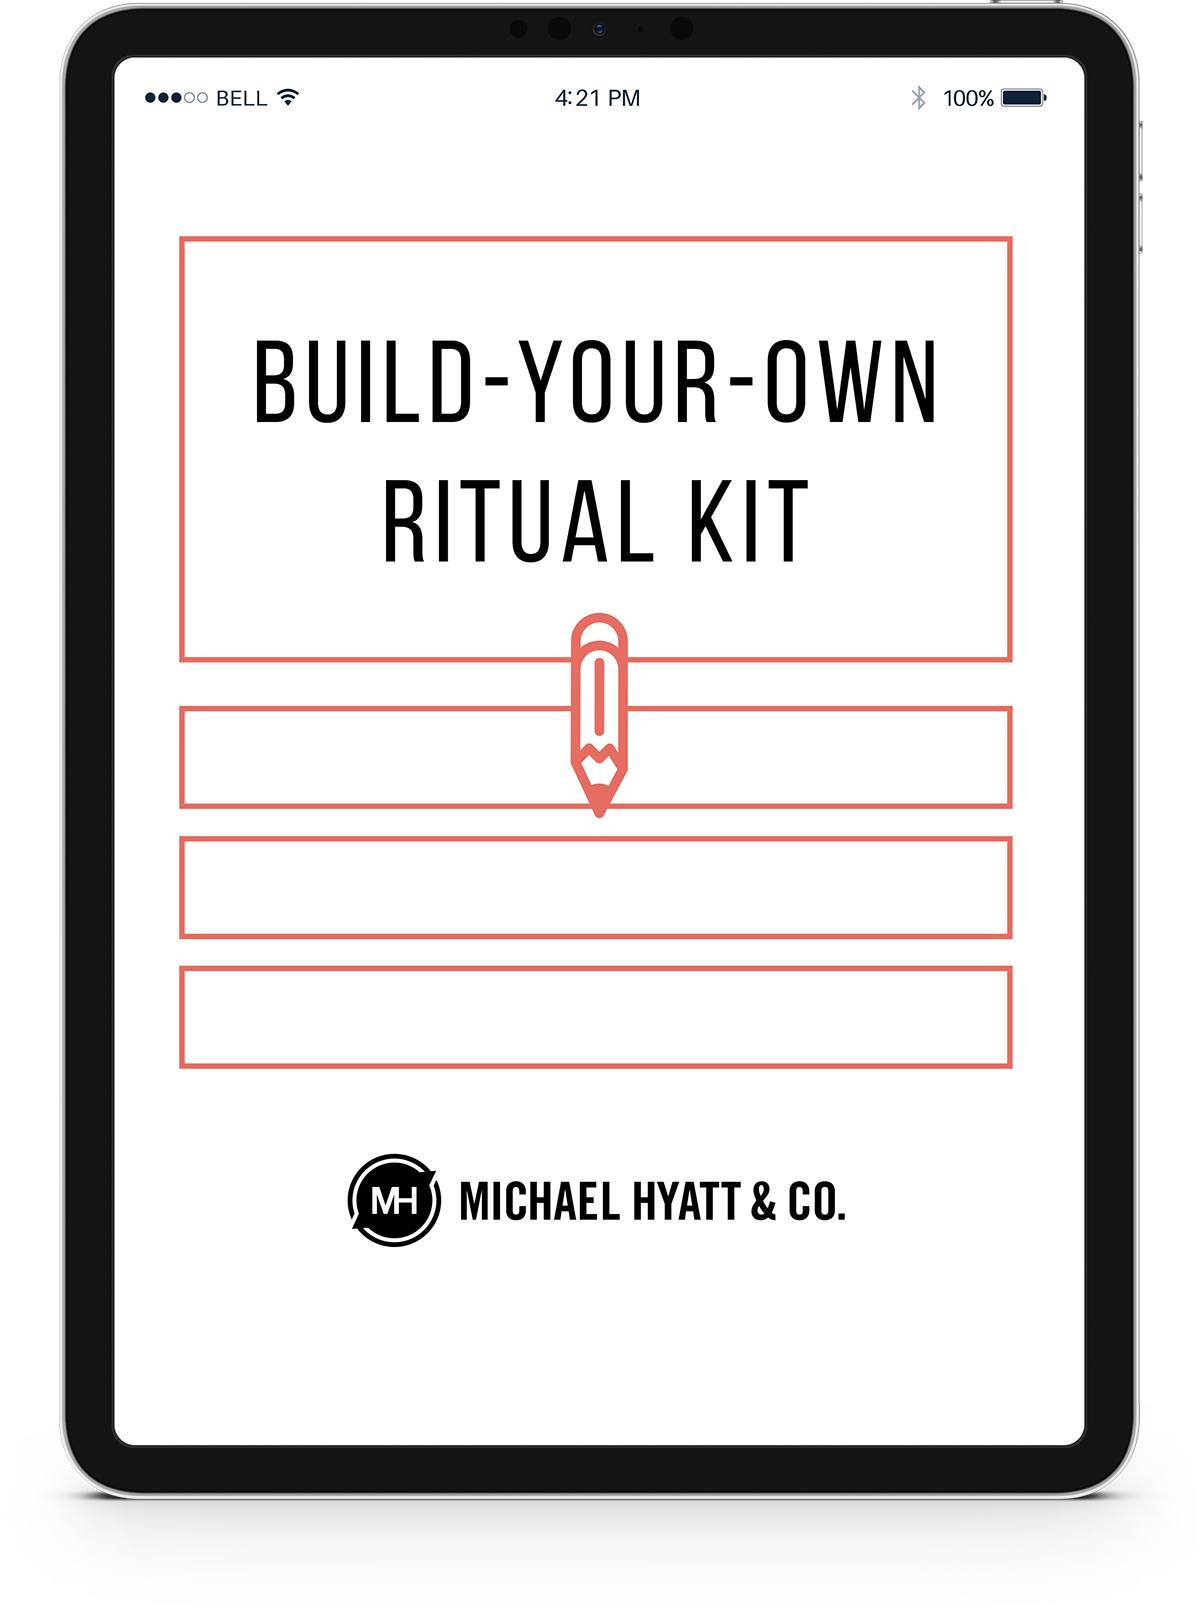 Build-Your-Own-Ritual-Kit_3D-edited